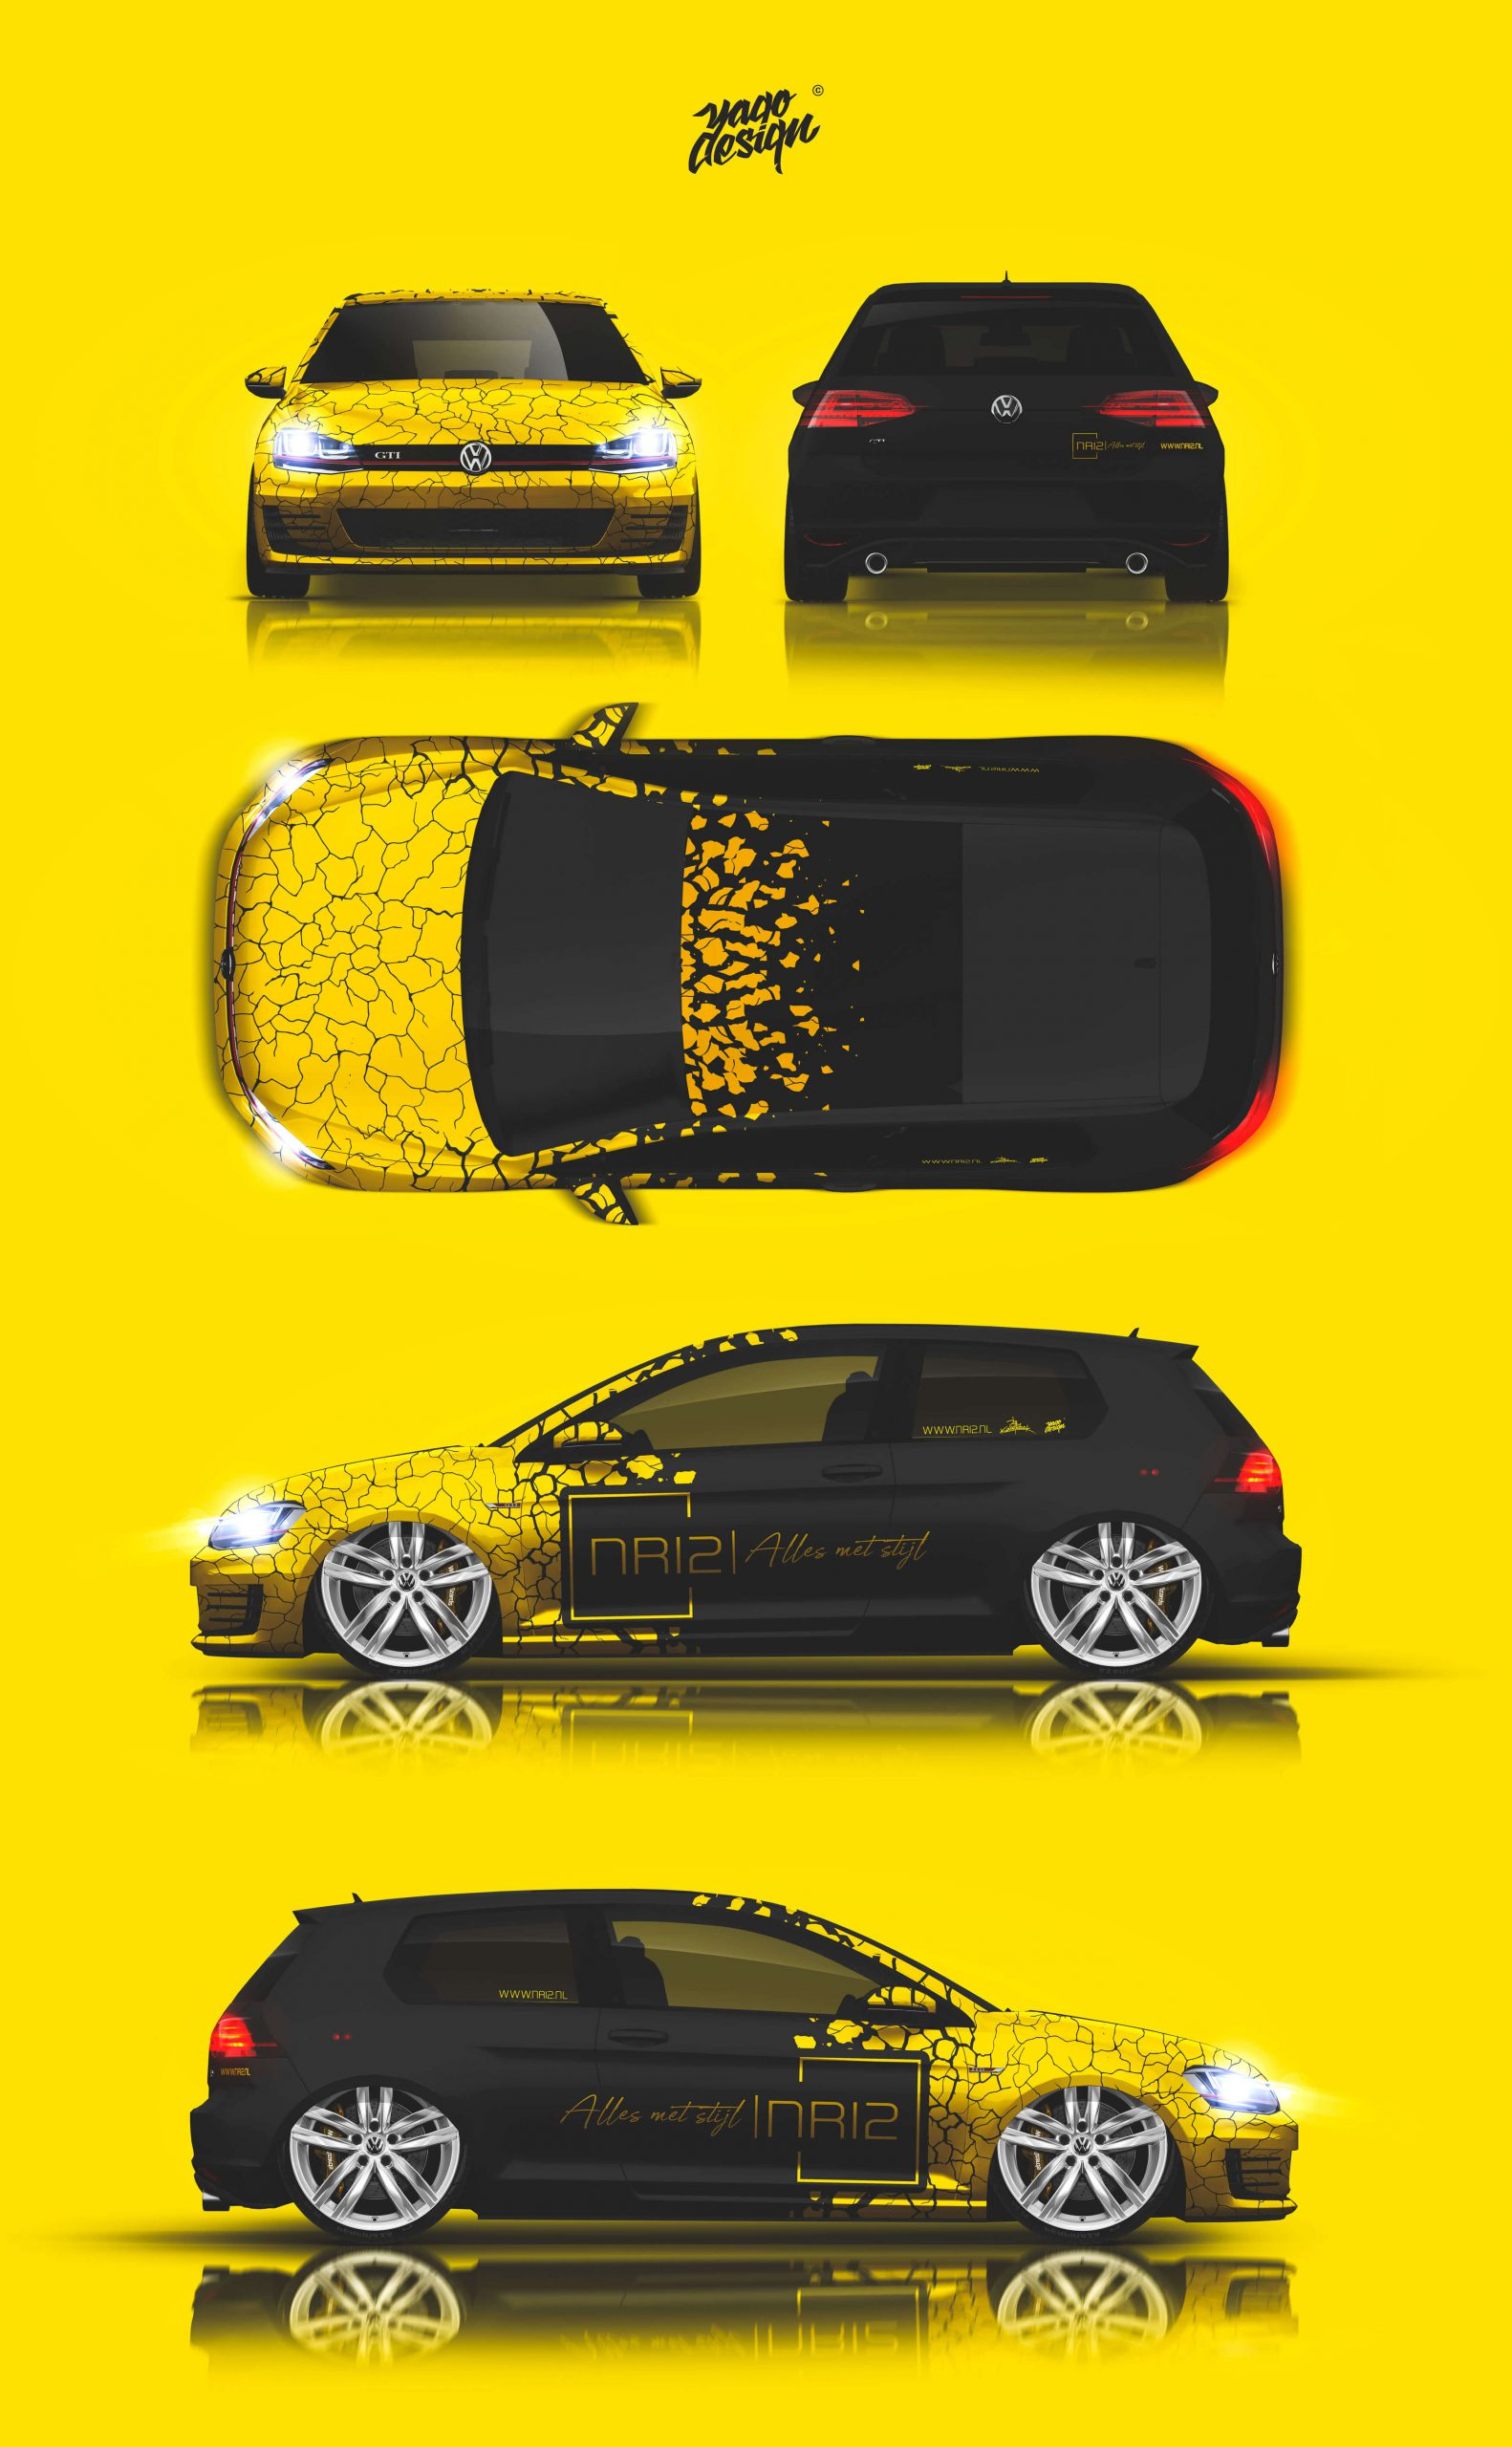 Volkswagen-golf-MK7-GTI-by-Yagodesign-Automotive-Design-Studio-scaled